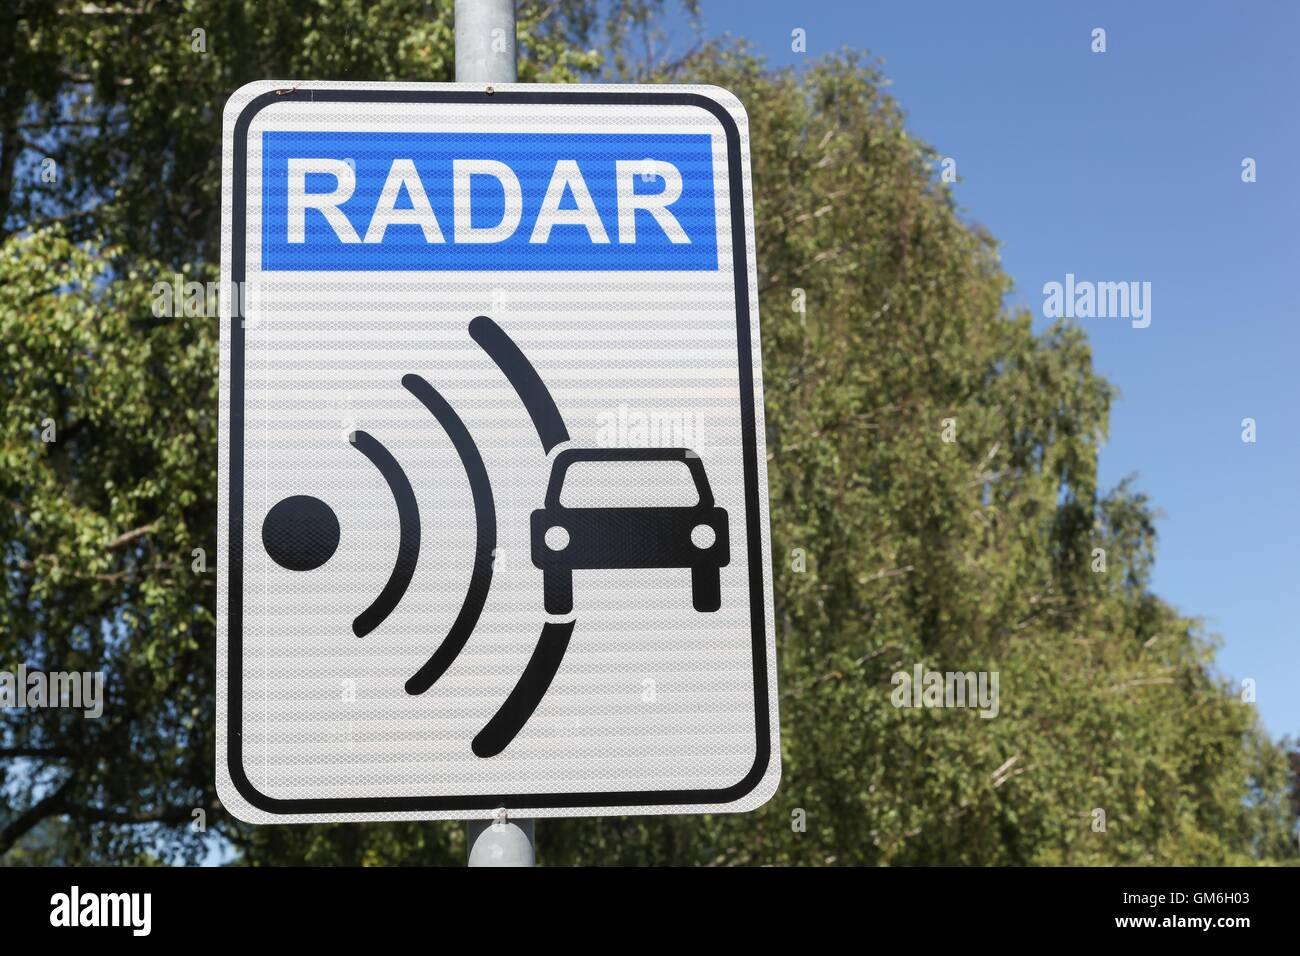 Radar signal and control on a road - Stock Image